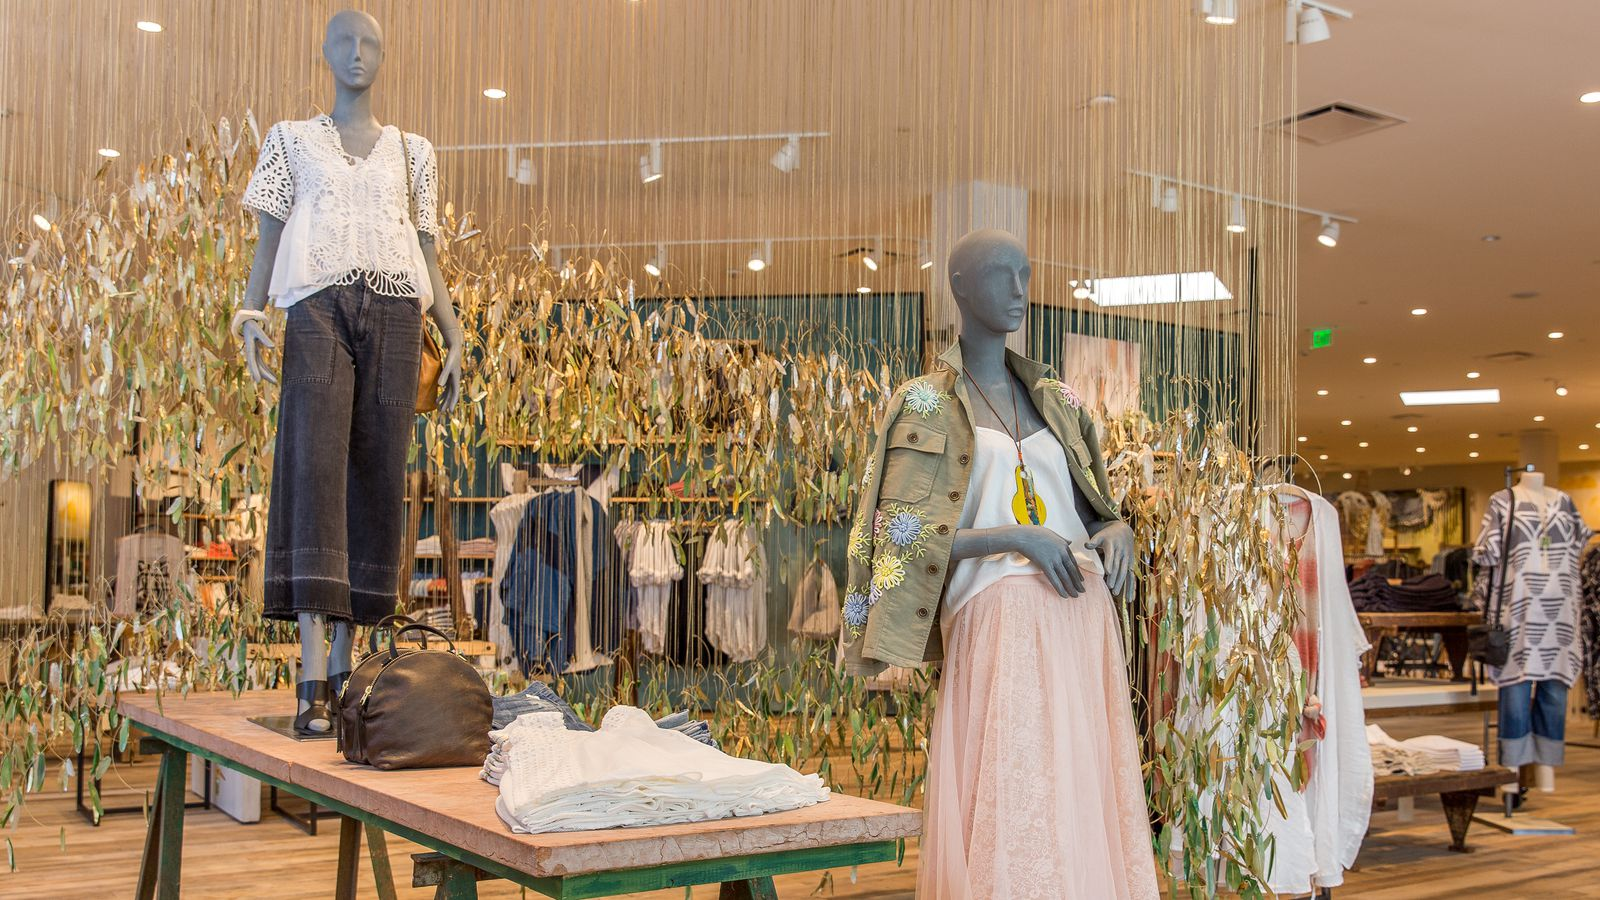 Anthropologies Upgraded Newport Beach Store Offers Major Home Decor Inspo Racked La